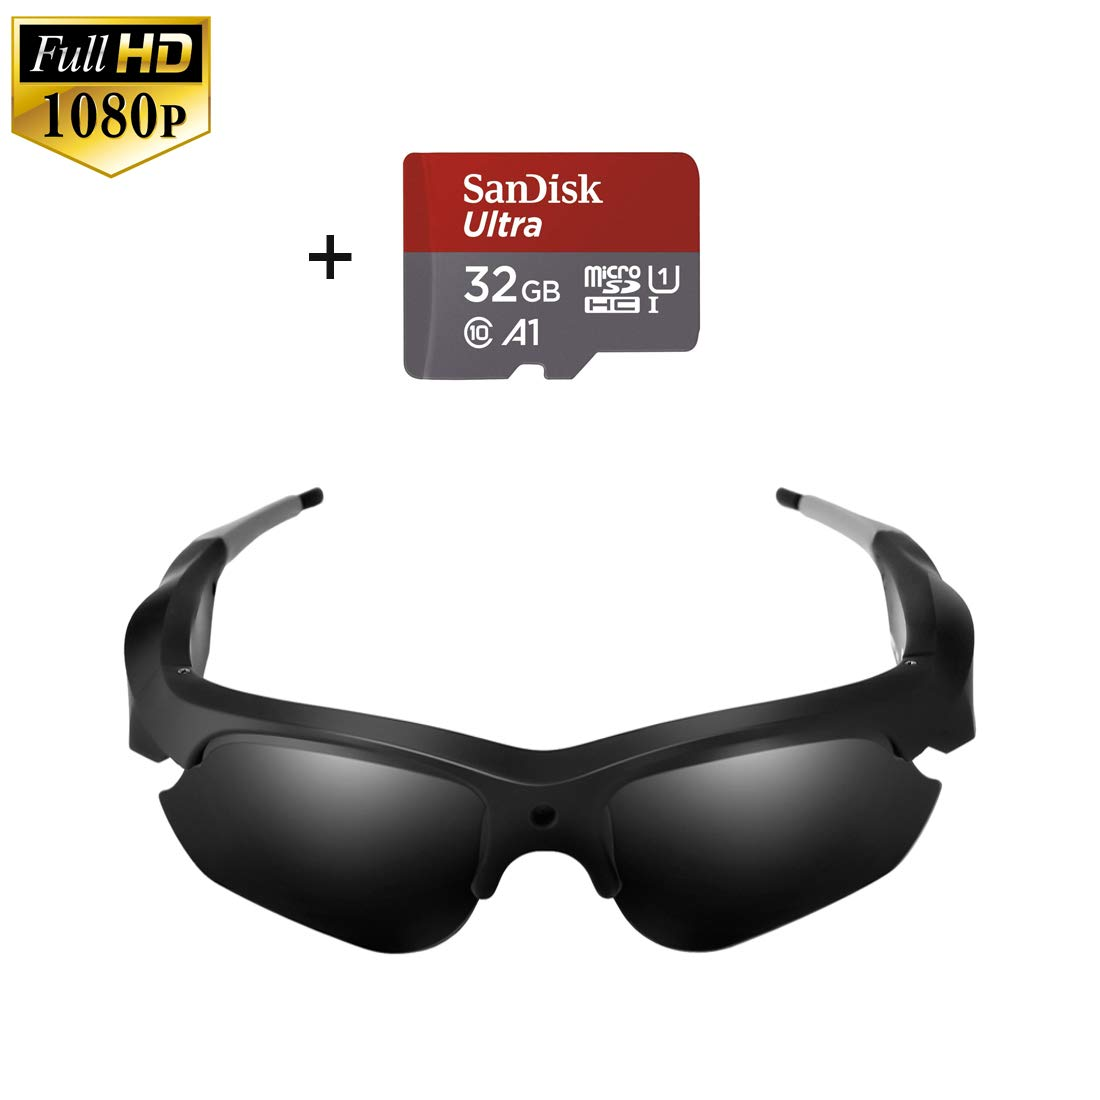 Camera Video Sunglasses,1080P Full HD Video Recording Camera with 32GB Built-in Memory,Camera Glasses by MingSung